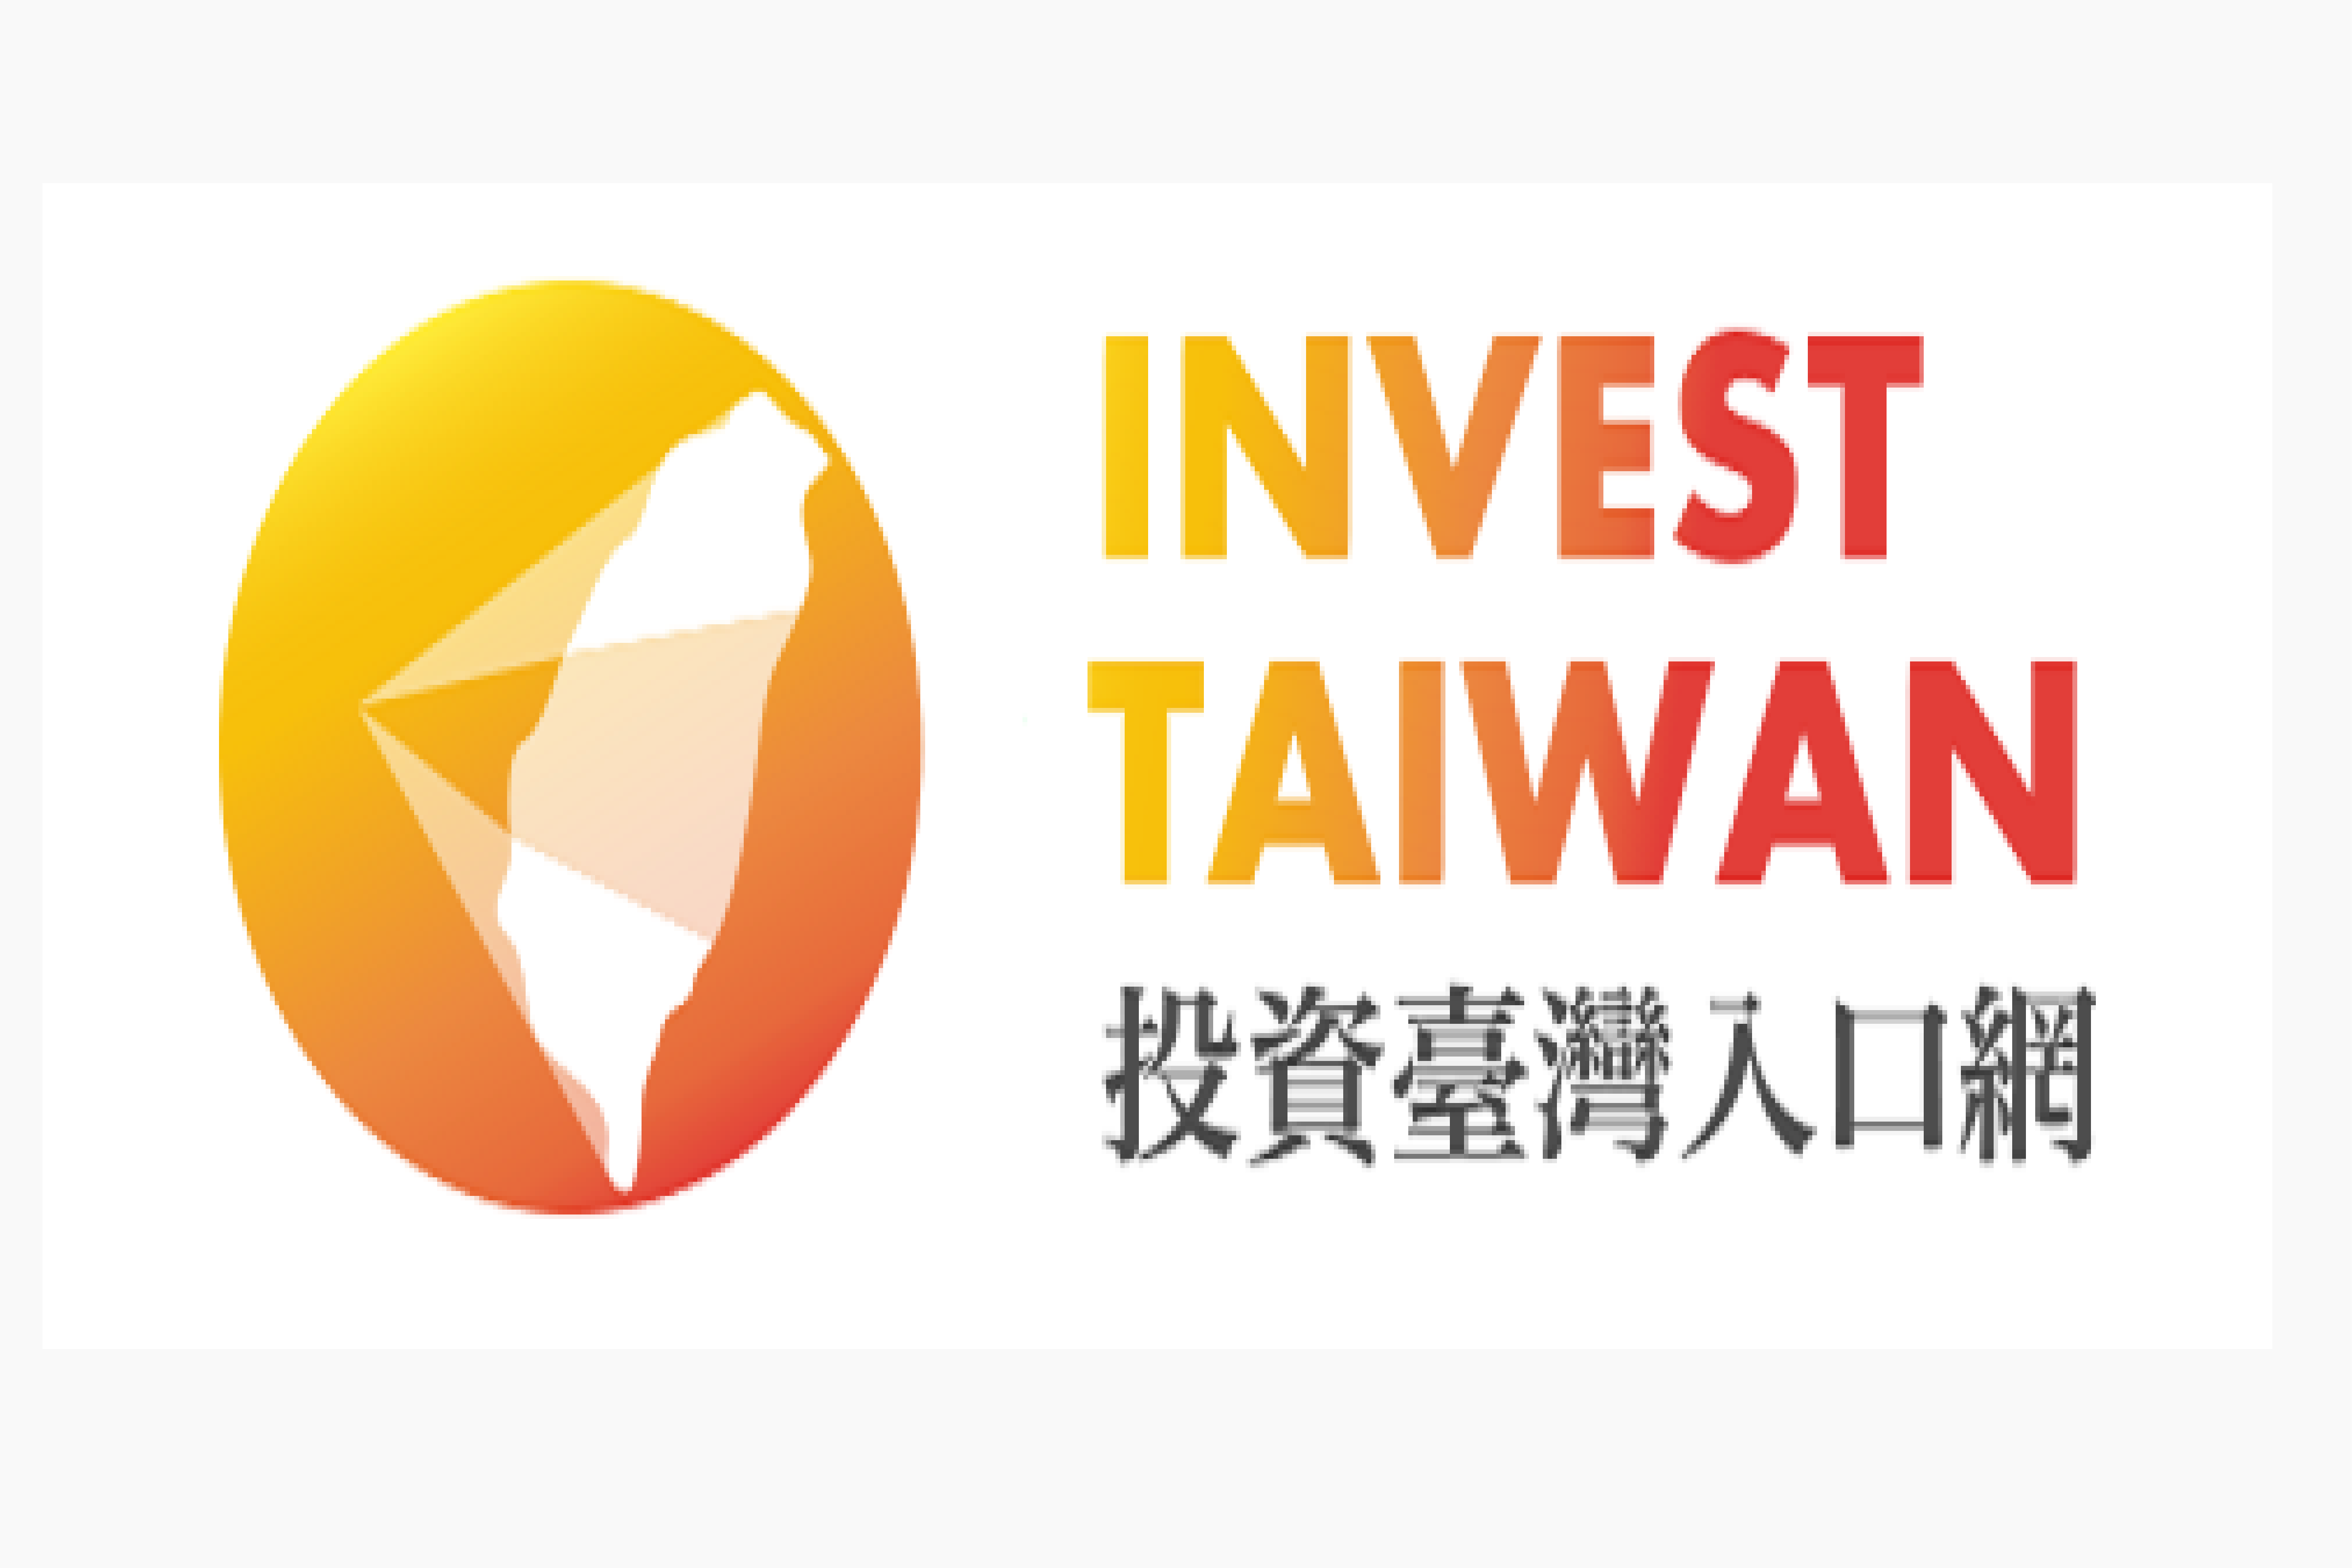 Taiwan Invest